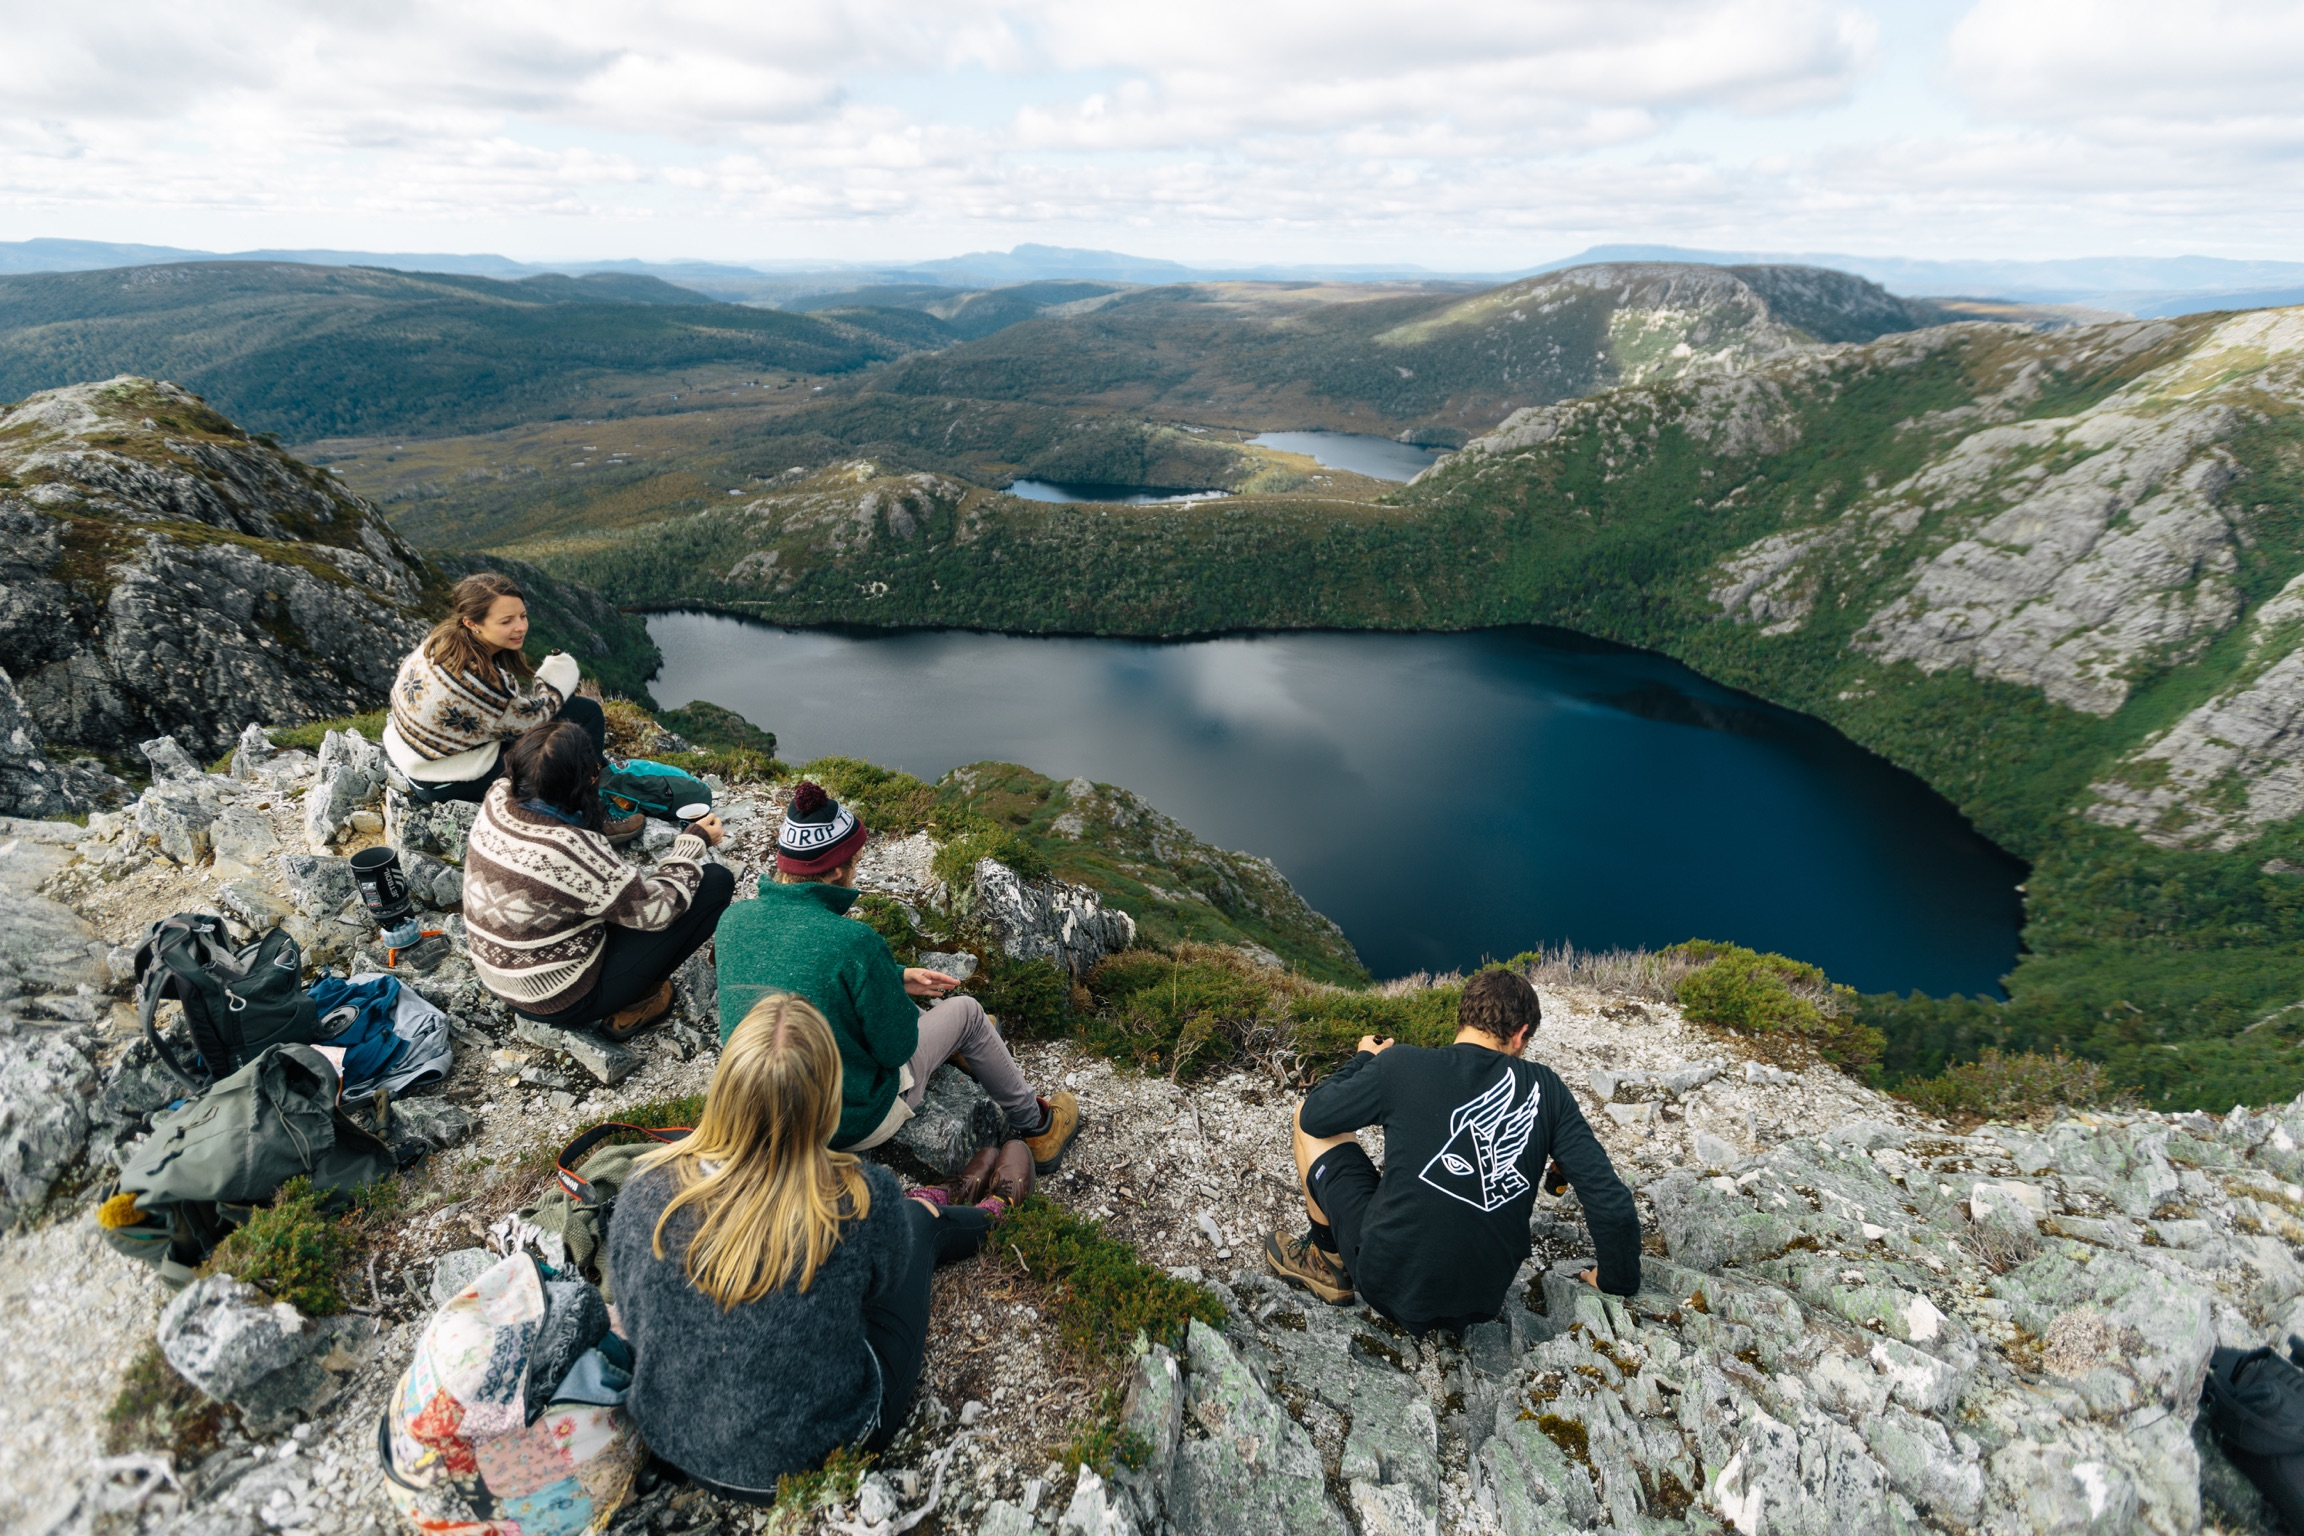 On the Mountain Huts Film Trail at Cradle Mountain Film Festival. Photo Jacob Collings